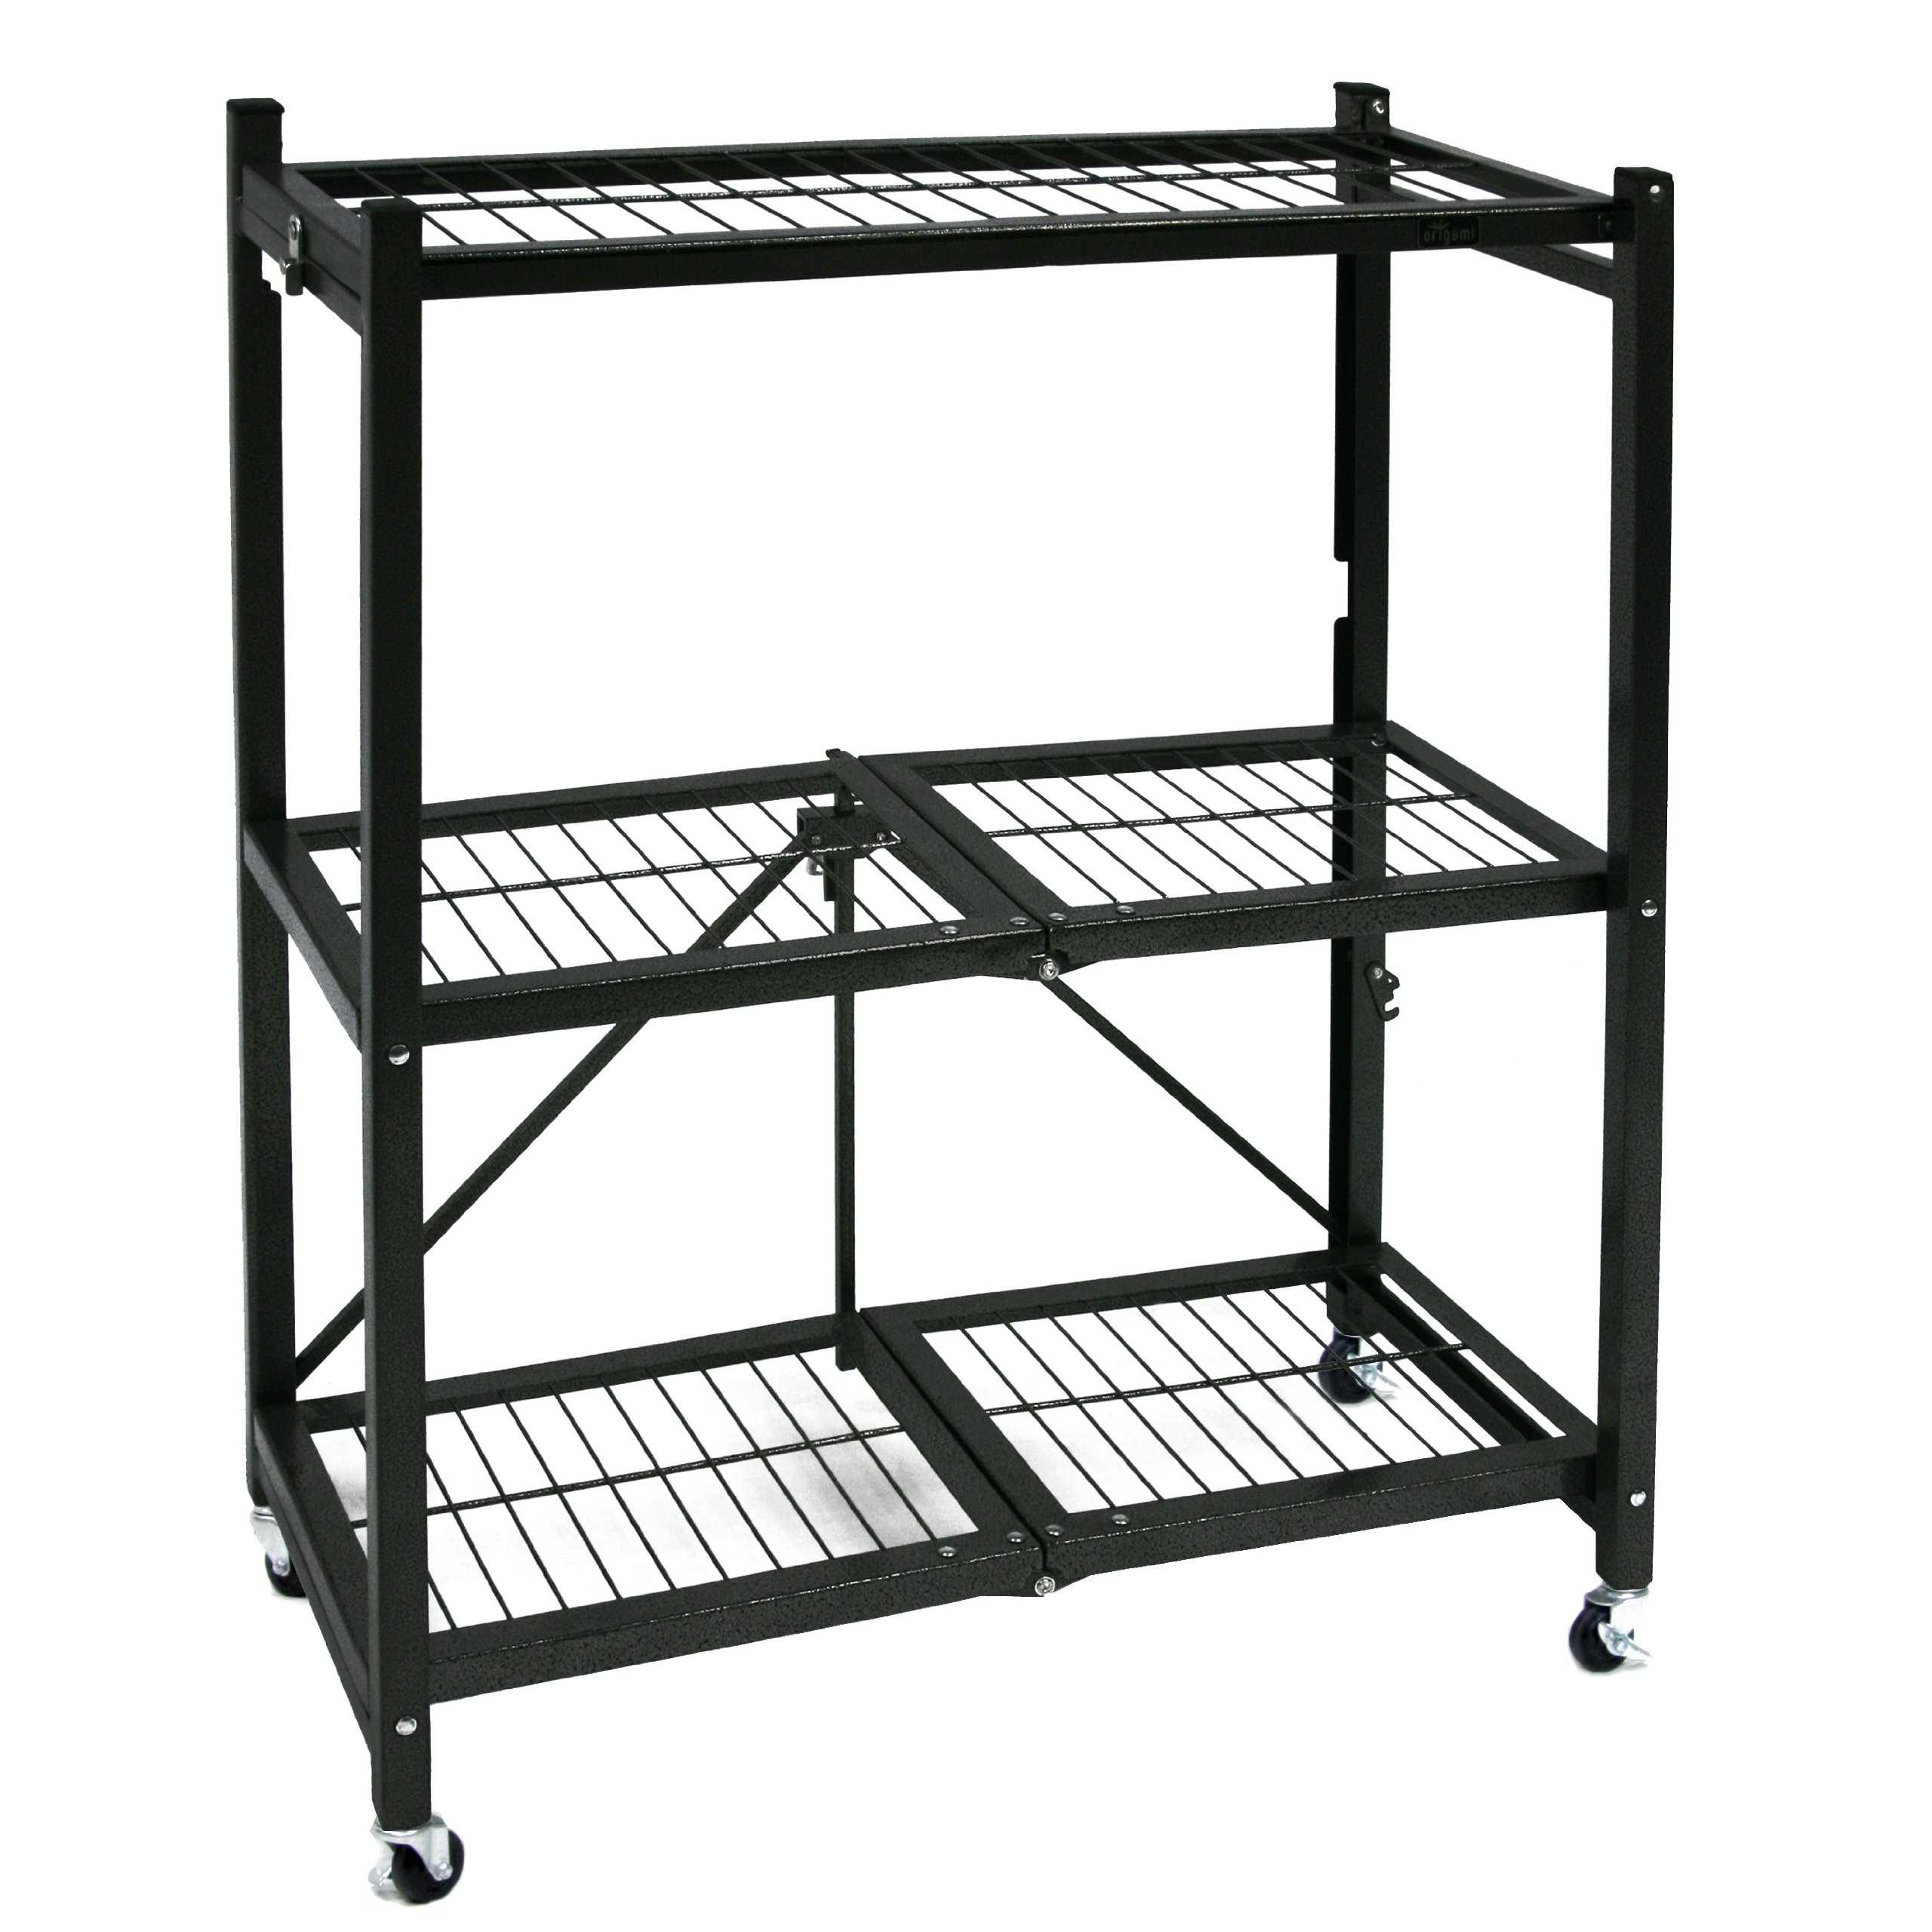 die warehouse racks products mold open product storage rack shelf and roll out